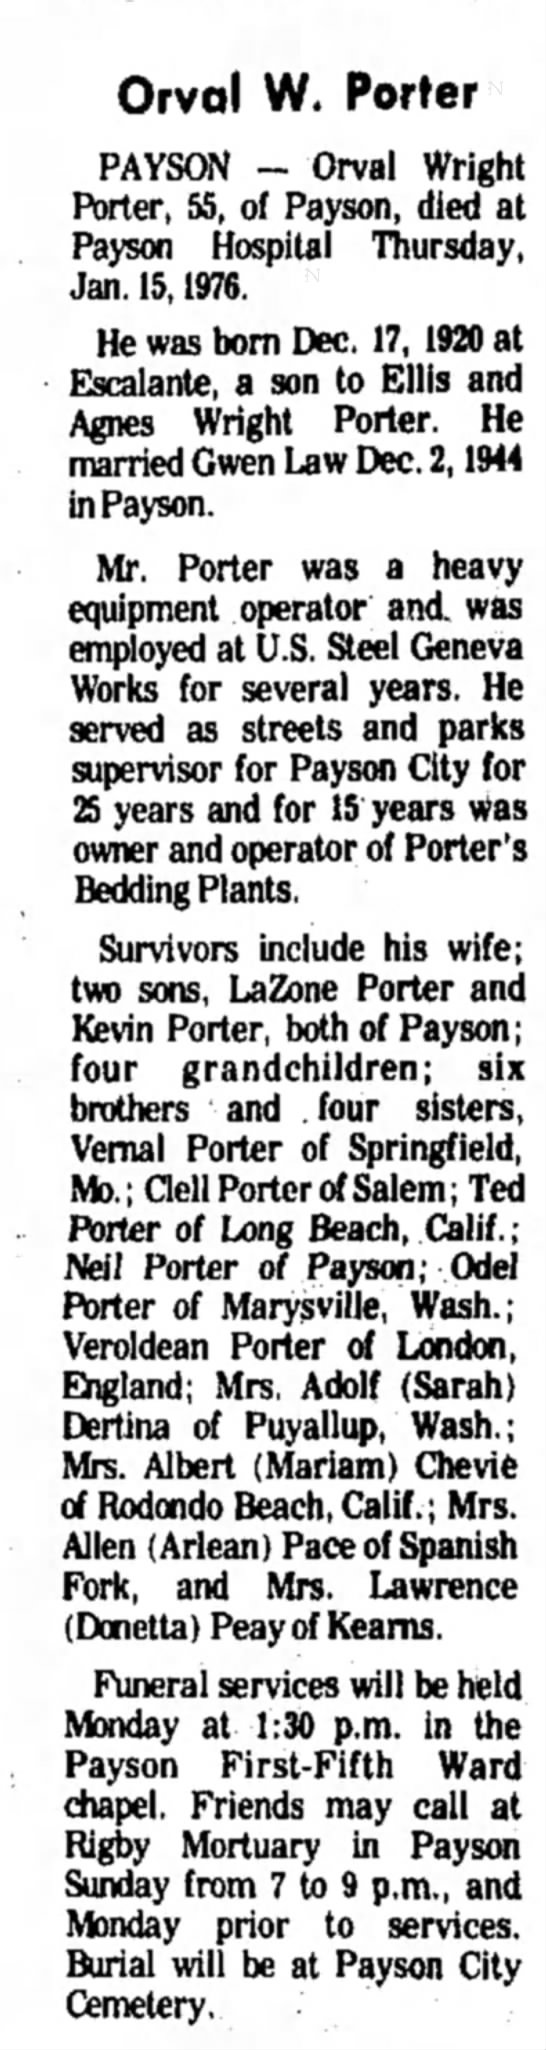 Orval Wright Porter Obituary - Orval W. Porter PAYSON - Orval Wright Porter,...